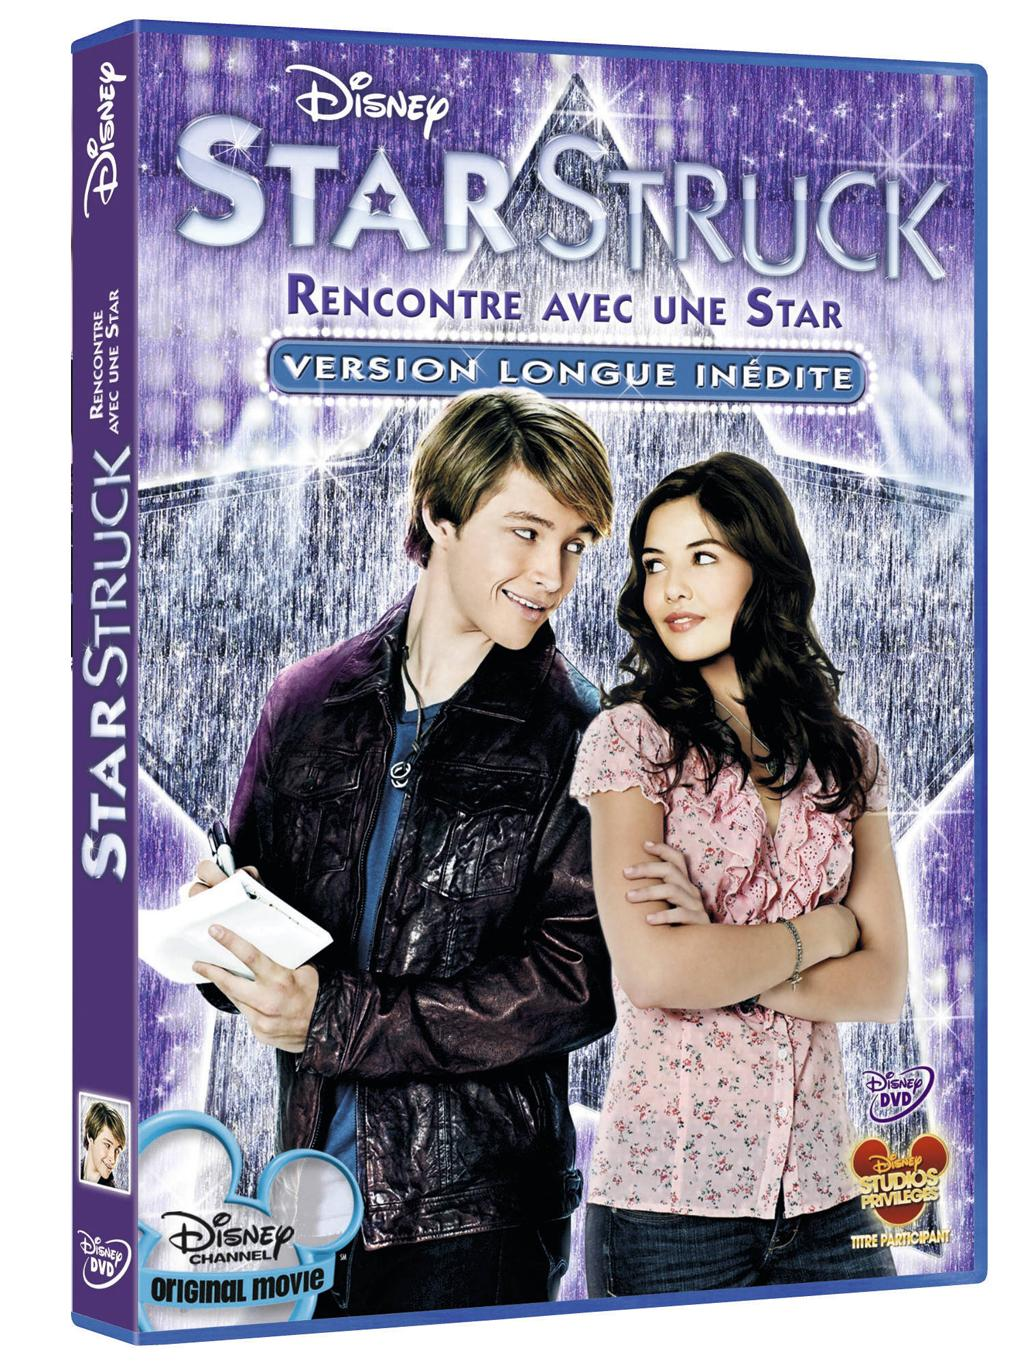 Starstruck rencontre avec une star streaming vf youwatch